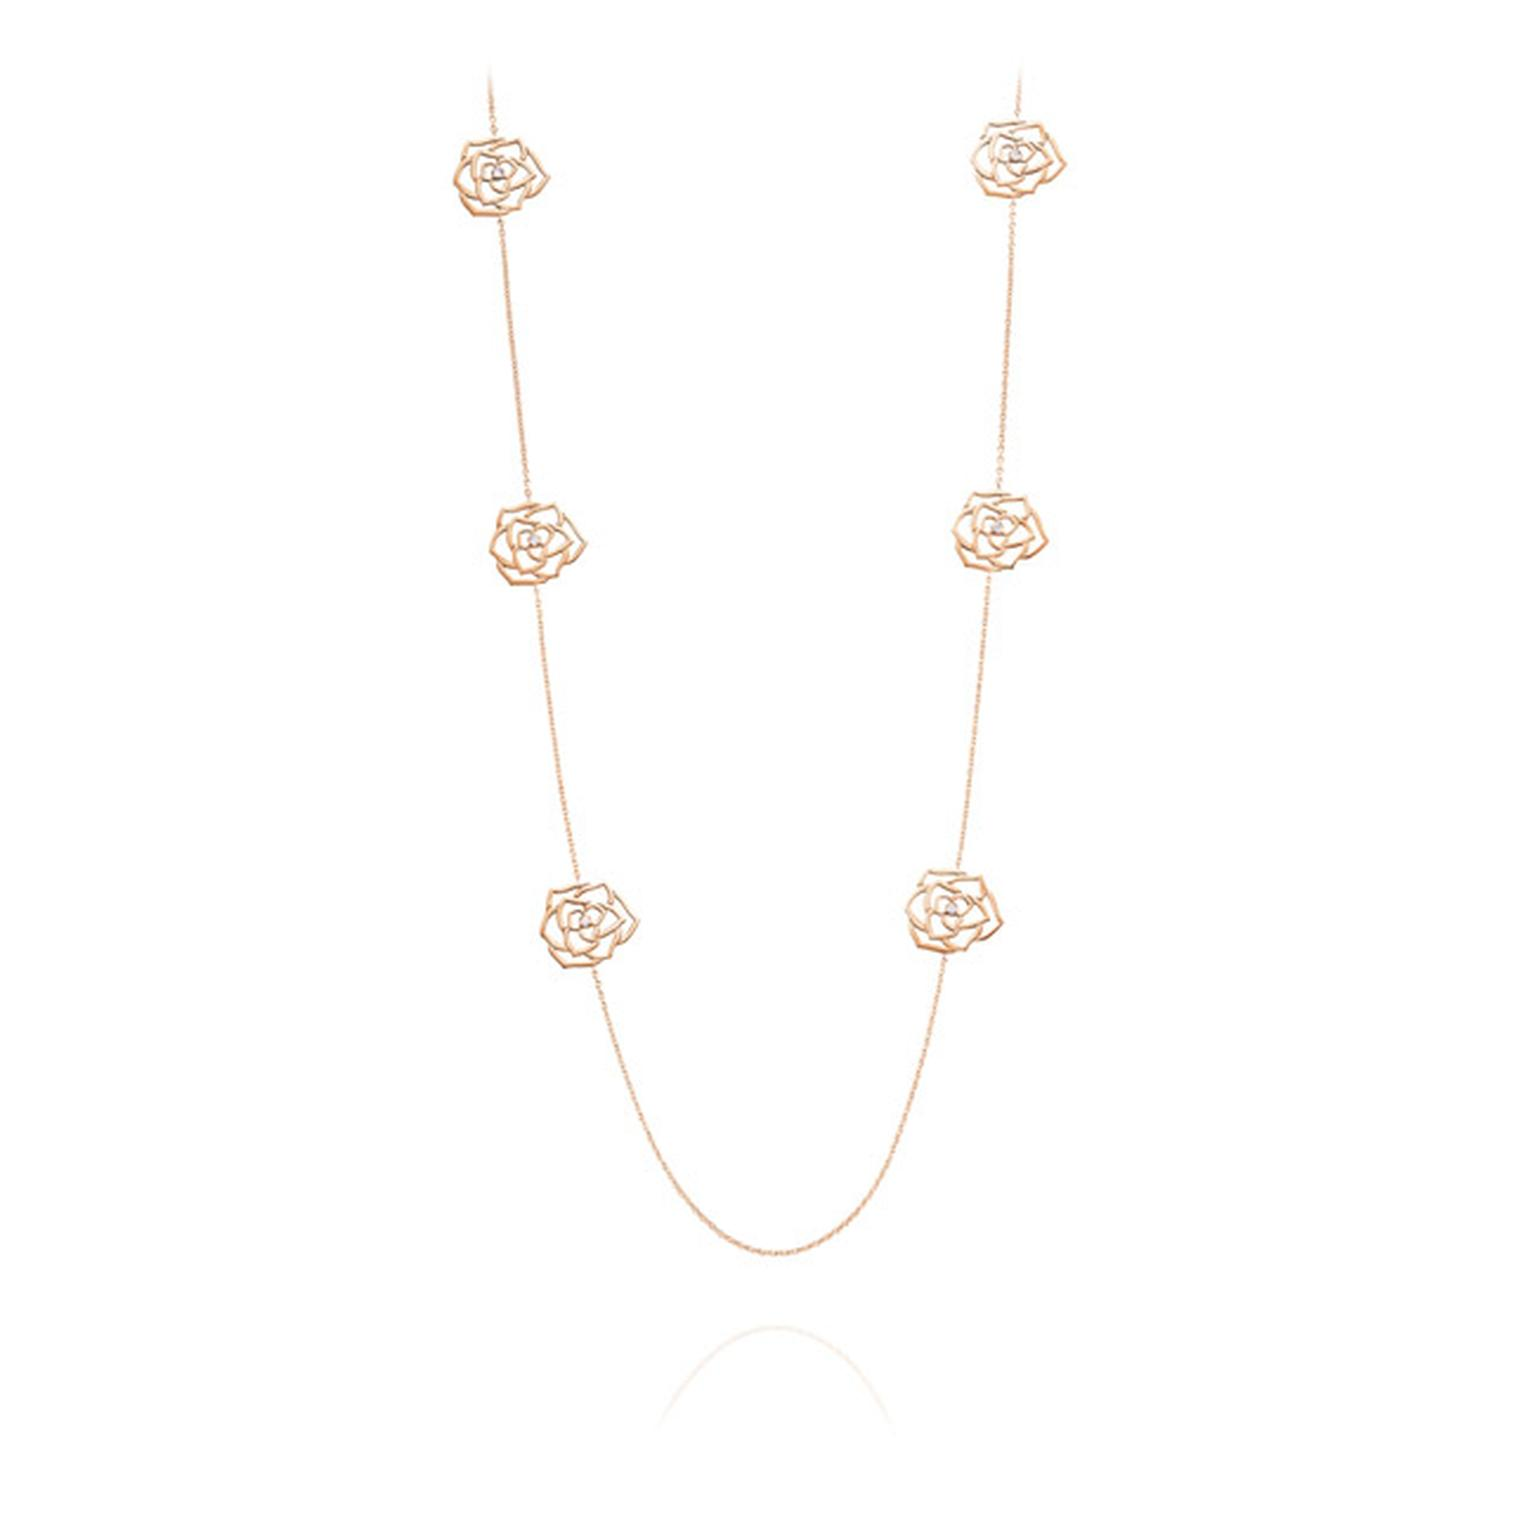 Piaget-Rose-Necklace-Main